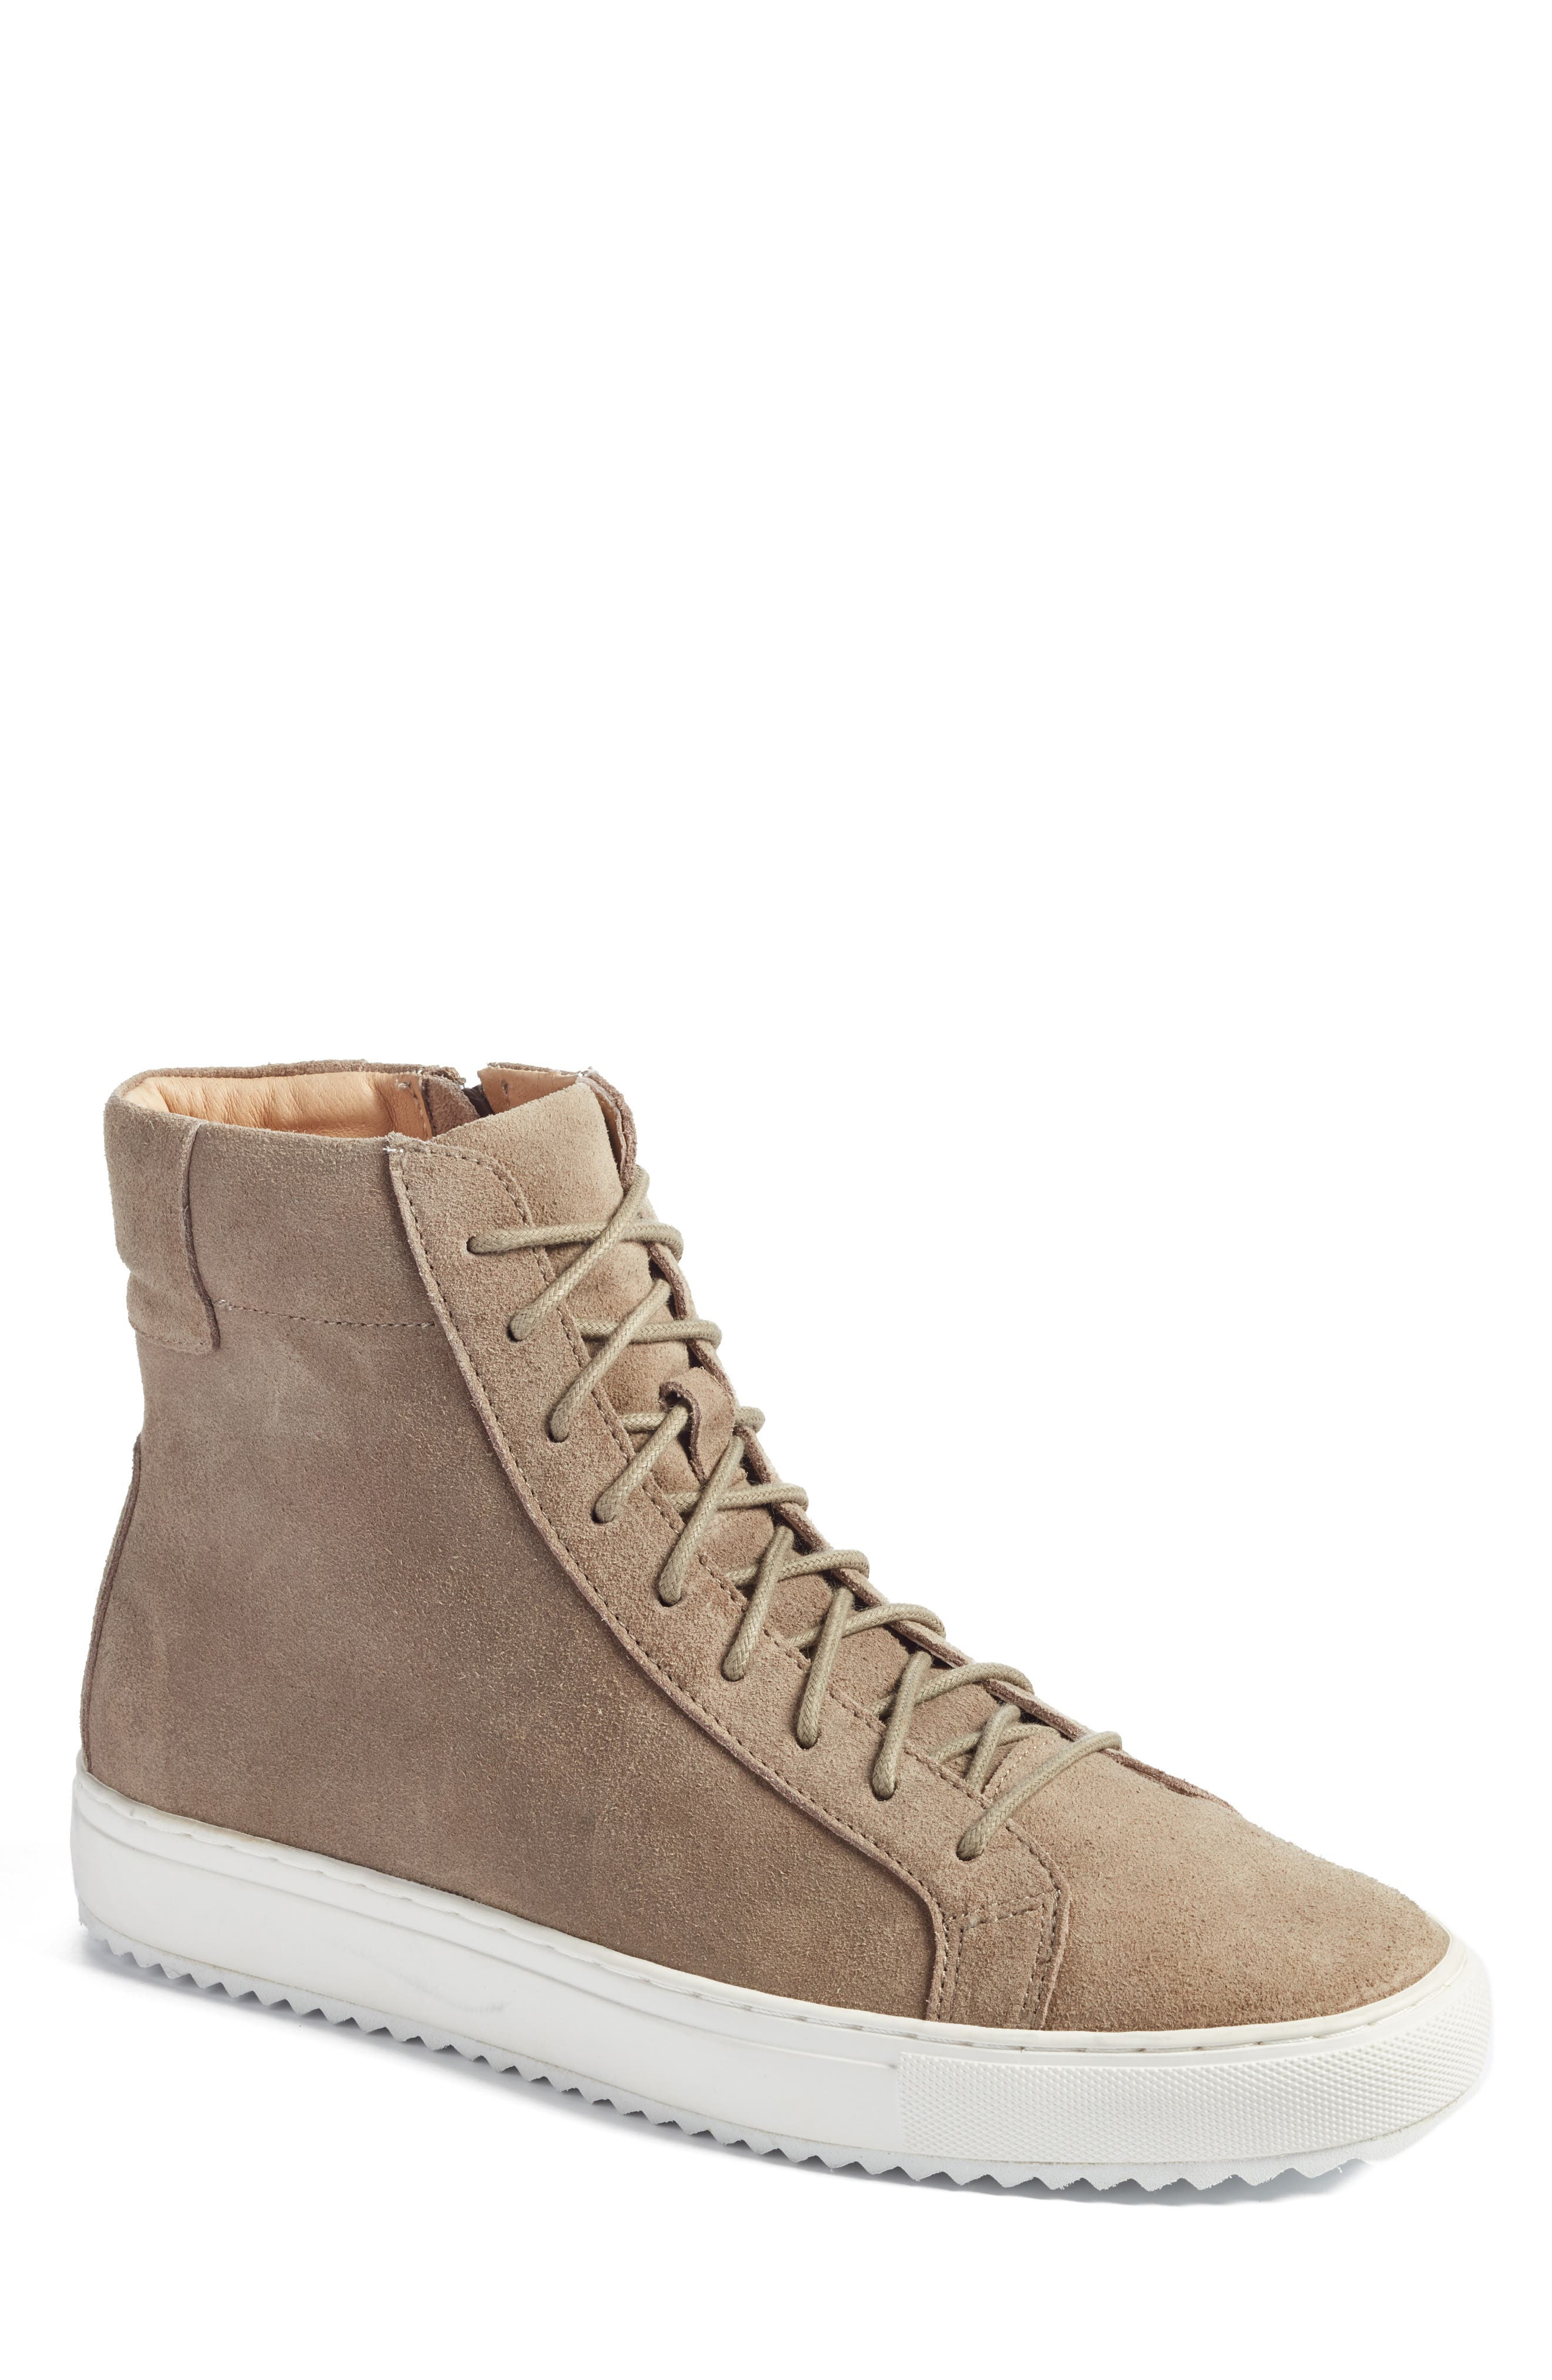 TCG Logan Water Resistant High Top Sneaker (Men)